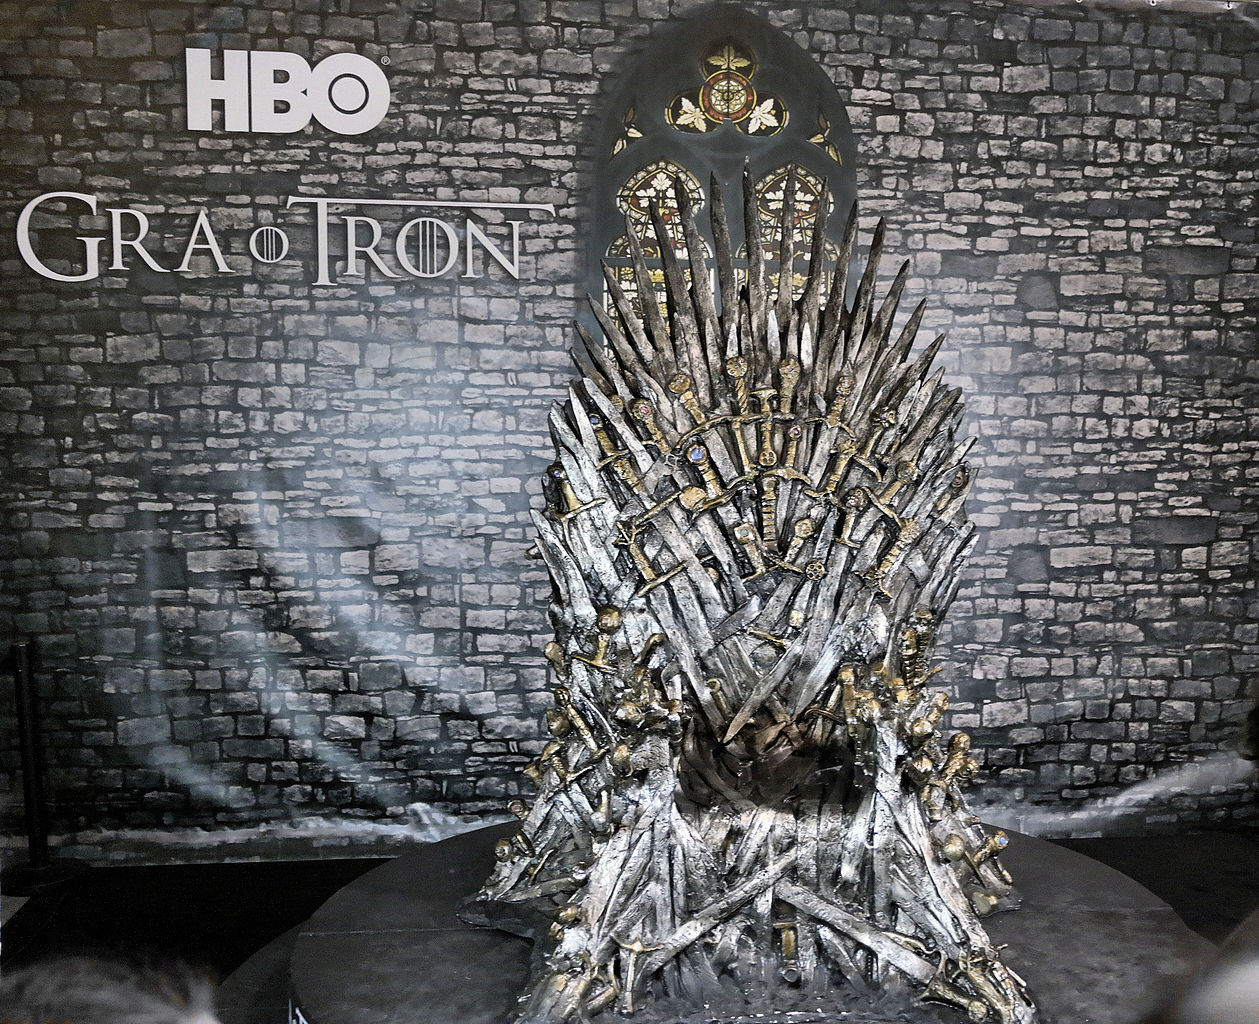 Poznań_Pyrkon_2015_Game_of_Thrones_Gra_o_Tron_HBO (1)